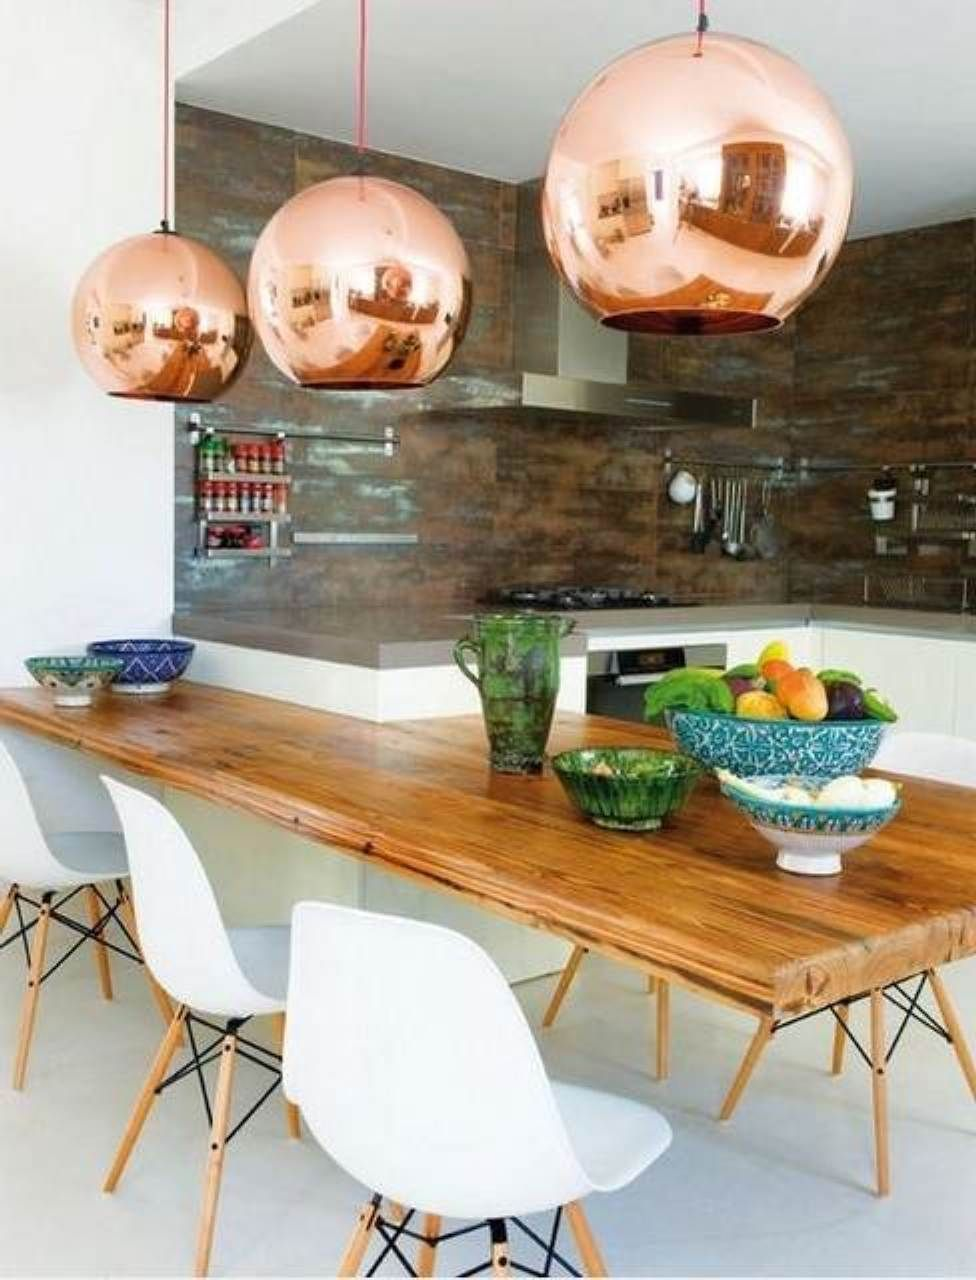 Merveilleux Copper Kitchen Pendant Lighting Ideas : Fabulous Kitchen Pendant Lighting  Ideas U2013 Better Home And Garden